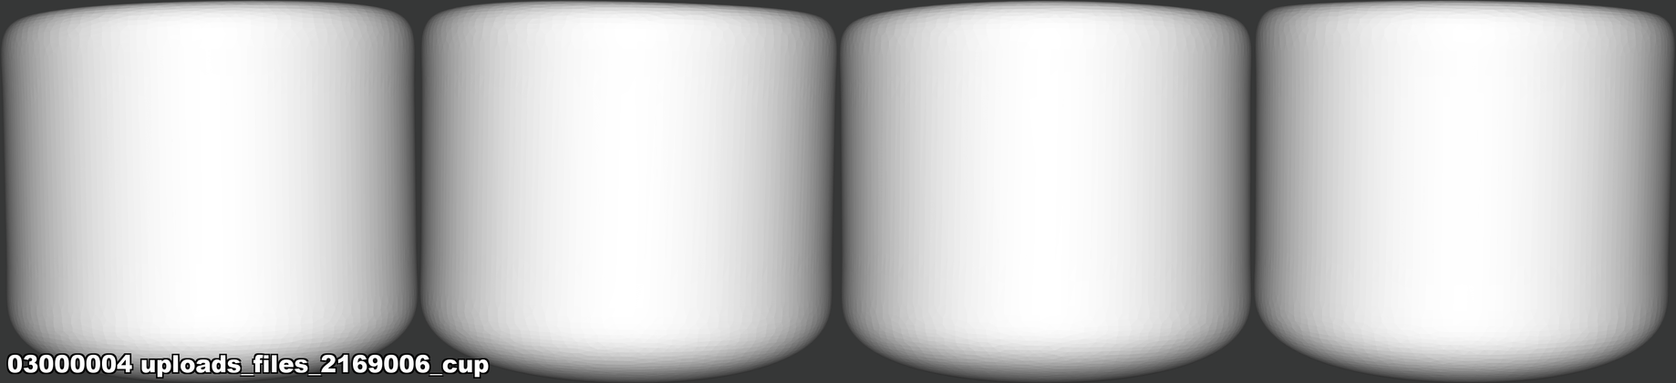 03000004 uploads_files_2169006_cup.png